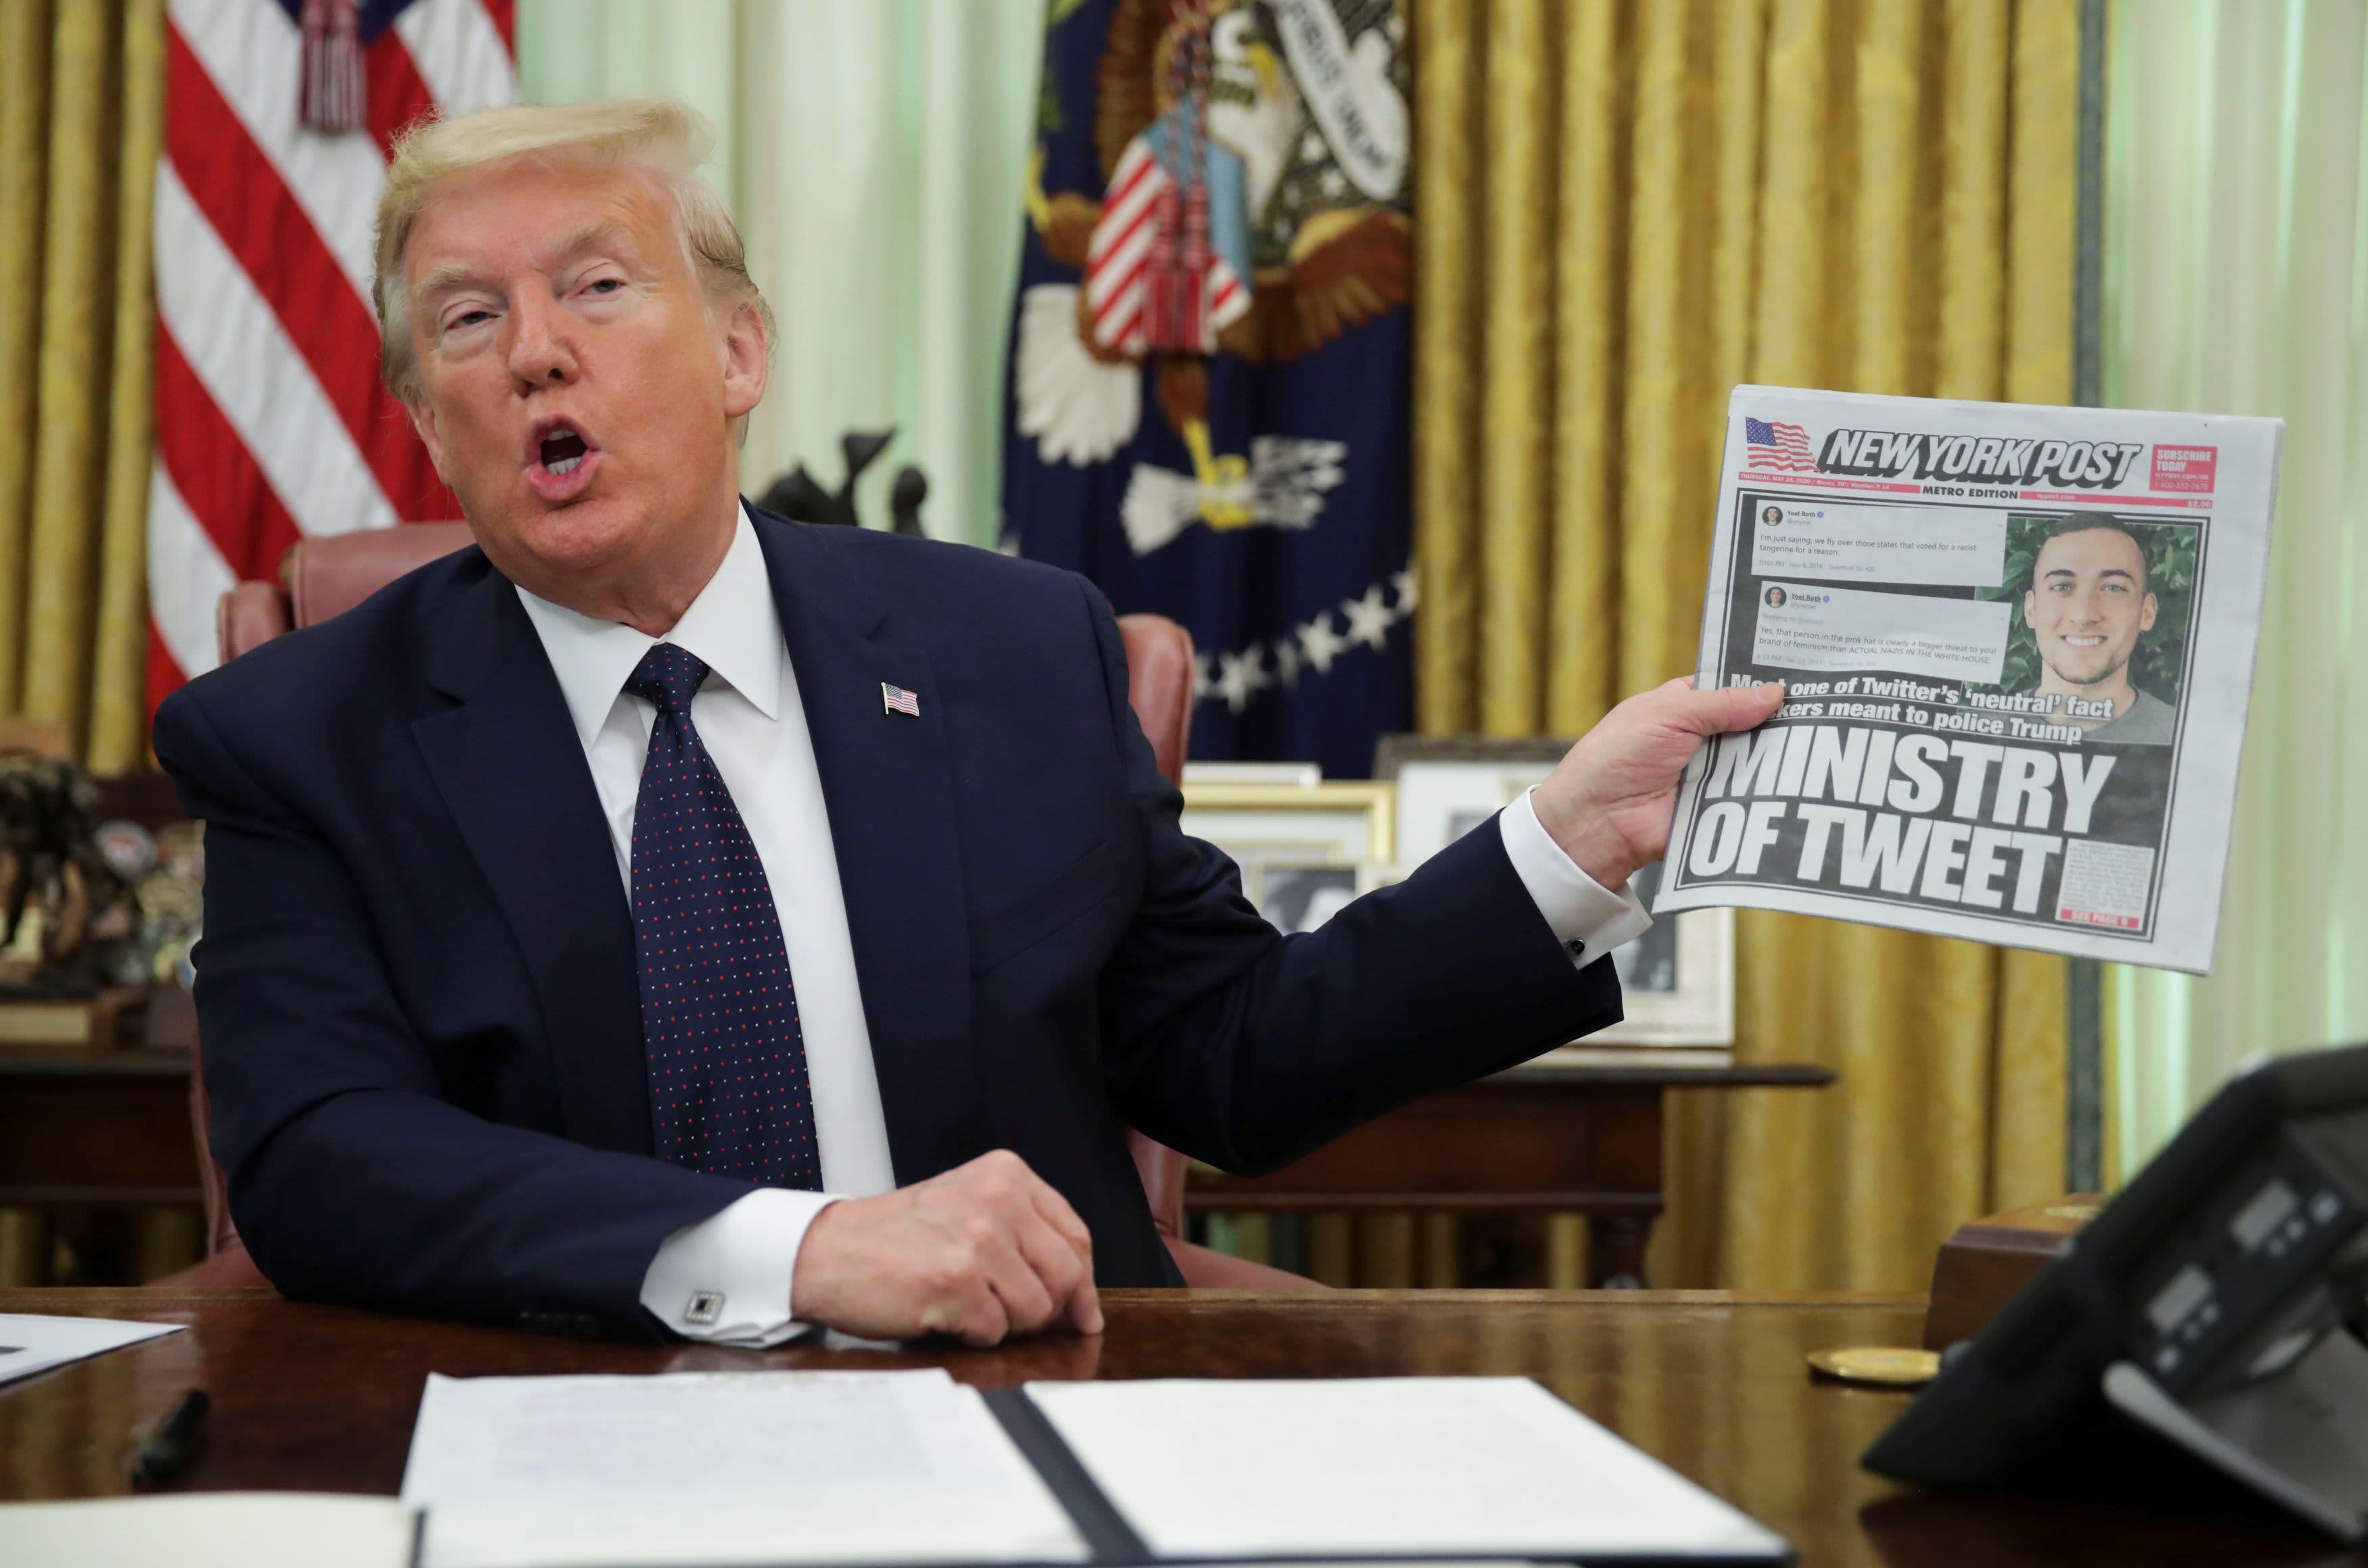 Image of article 'Trump targets social media companies with executive order after Twitter fact-checks his tweets'